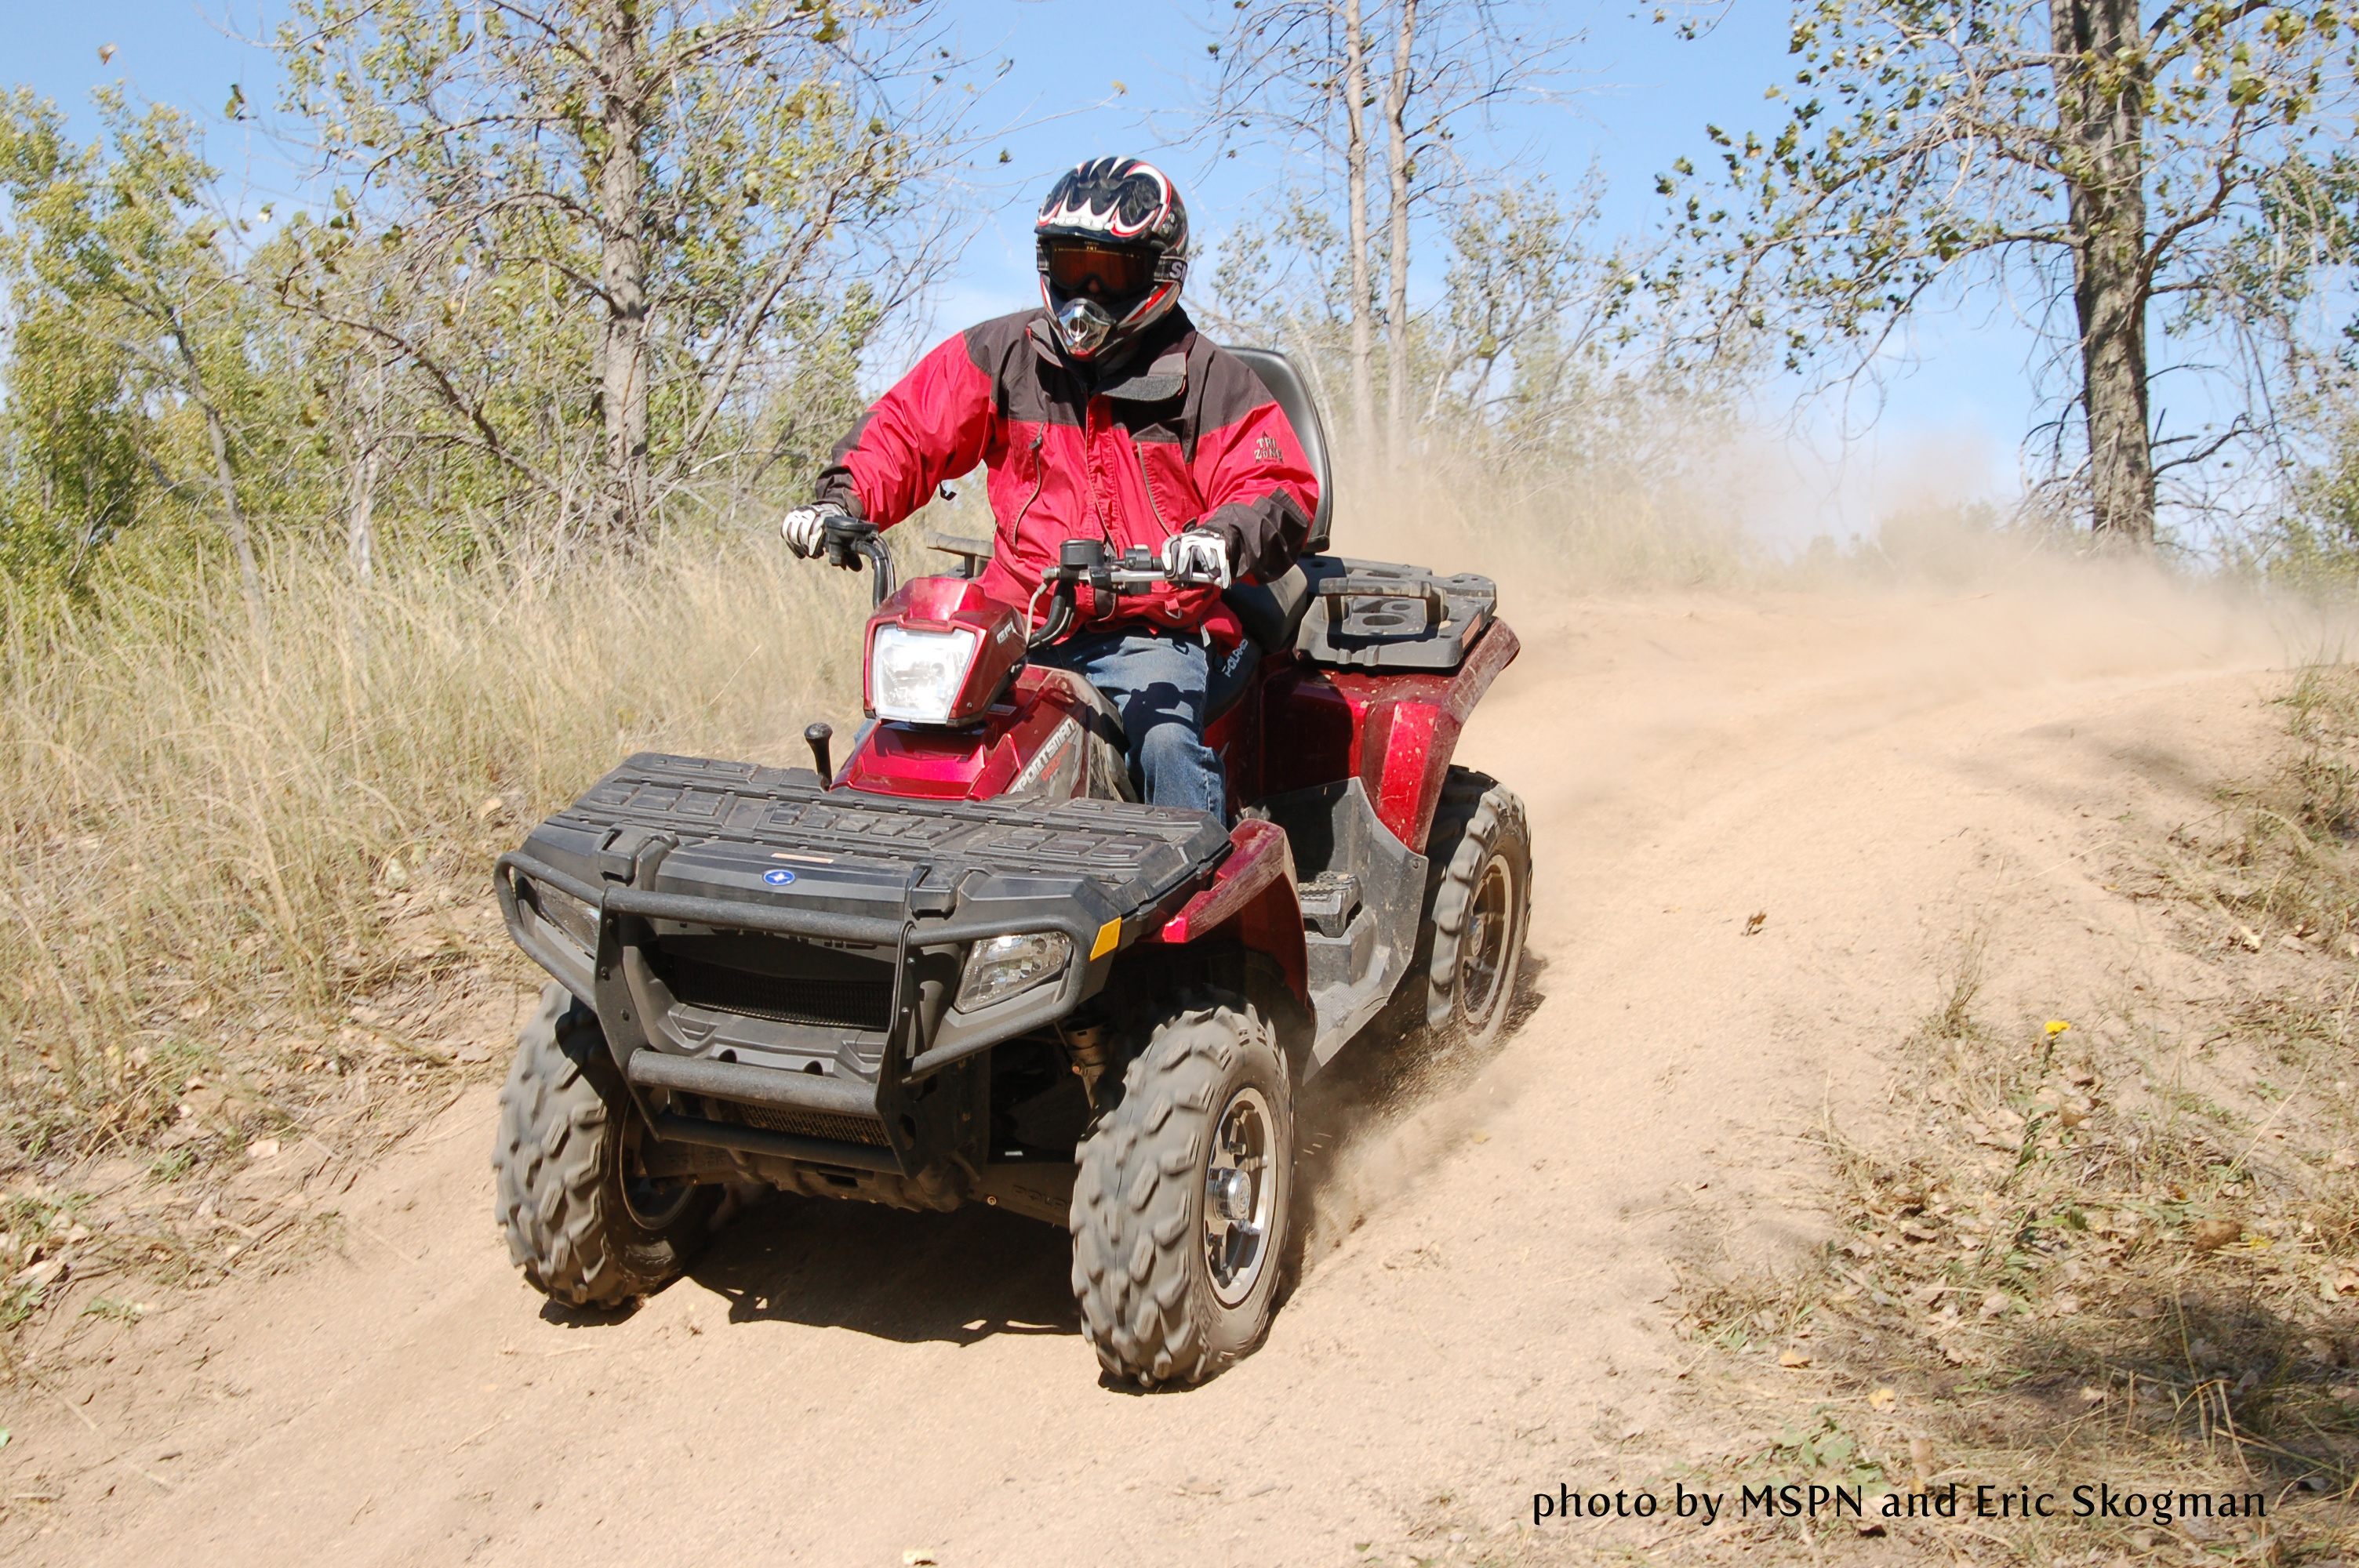 Appleton Area OHV Park2 miles northeast of Appleton on Hwy. 59. (Map it!)330 Acre Park for ATV's, Off-Highway Motorcycles (OHM) & Off Road Vehicles (ORV)10 Miles of ORV Trails5 Miles of ATV/OHM Trails1.5 Mile OHM Practice Track3 Enduro TracksYouth ATV Training CourseYouth OHM Practice TrackGroomed Snomobile TrailsJumps, Water Hole, Sand Dunes, Hill Climbs, Rock CrawlsHiking PathPlay AreasShelter/Picnic AreasFREE ADMISSIONHours: Sunrise to Sunset 7 Days a Week!- All OHV's Must Be Registered- Contact any DNR Conservation Officer. See OHV Regulations Link Below-The City of Appletonhas a city license that should be obtained for driving ATVs on City Streets. This license is free of charge.Information that needs to be provided is: Name, Address,Telephone Number, DNR licensenumber of vehicle and a signature. The form can be found below. Please return to the city office at least 1 week prior to your visit so you can receive your approved permit.